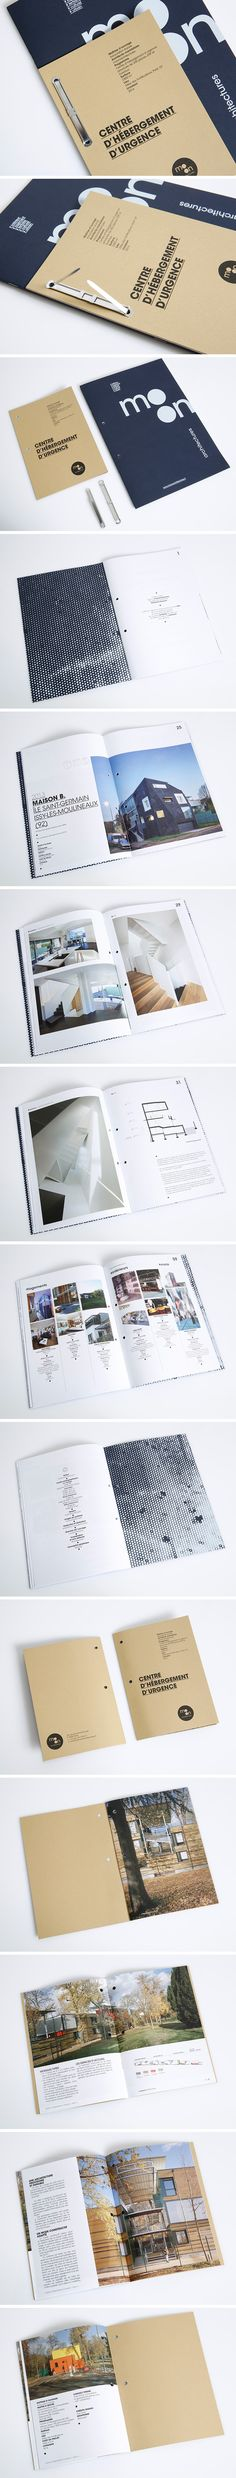 Design graphique d'une brochure de références pour un studio d'architecture et d'un dossier de presse par waixing.eu Printing And Binding, Design Graphique, Editorial Design, Studio, Architecture, Prints, Press Kit, Arquitetura, Study